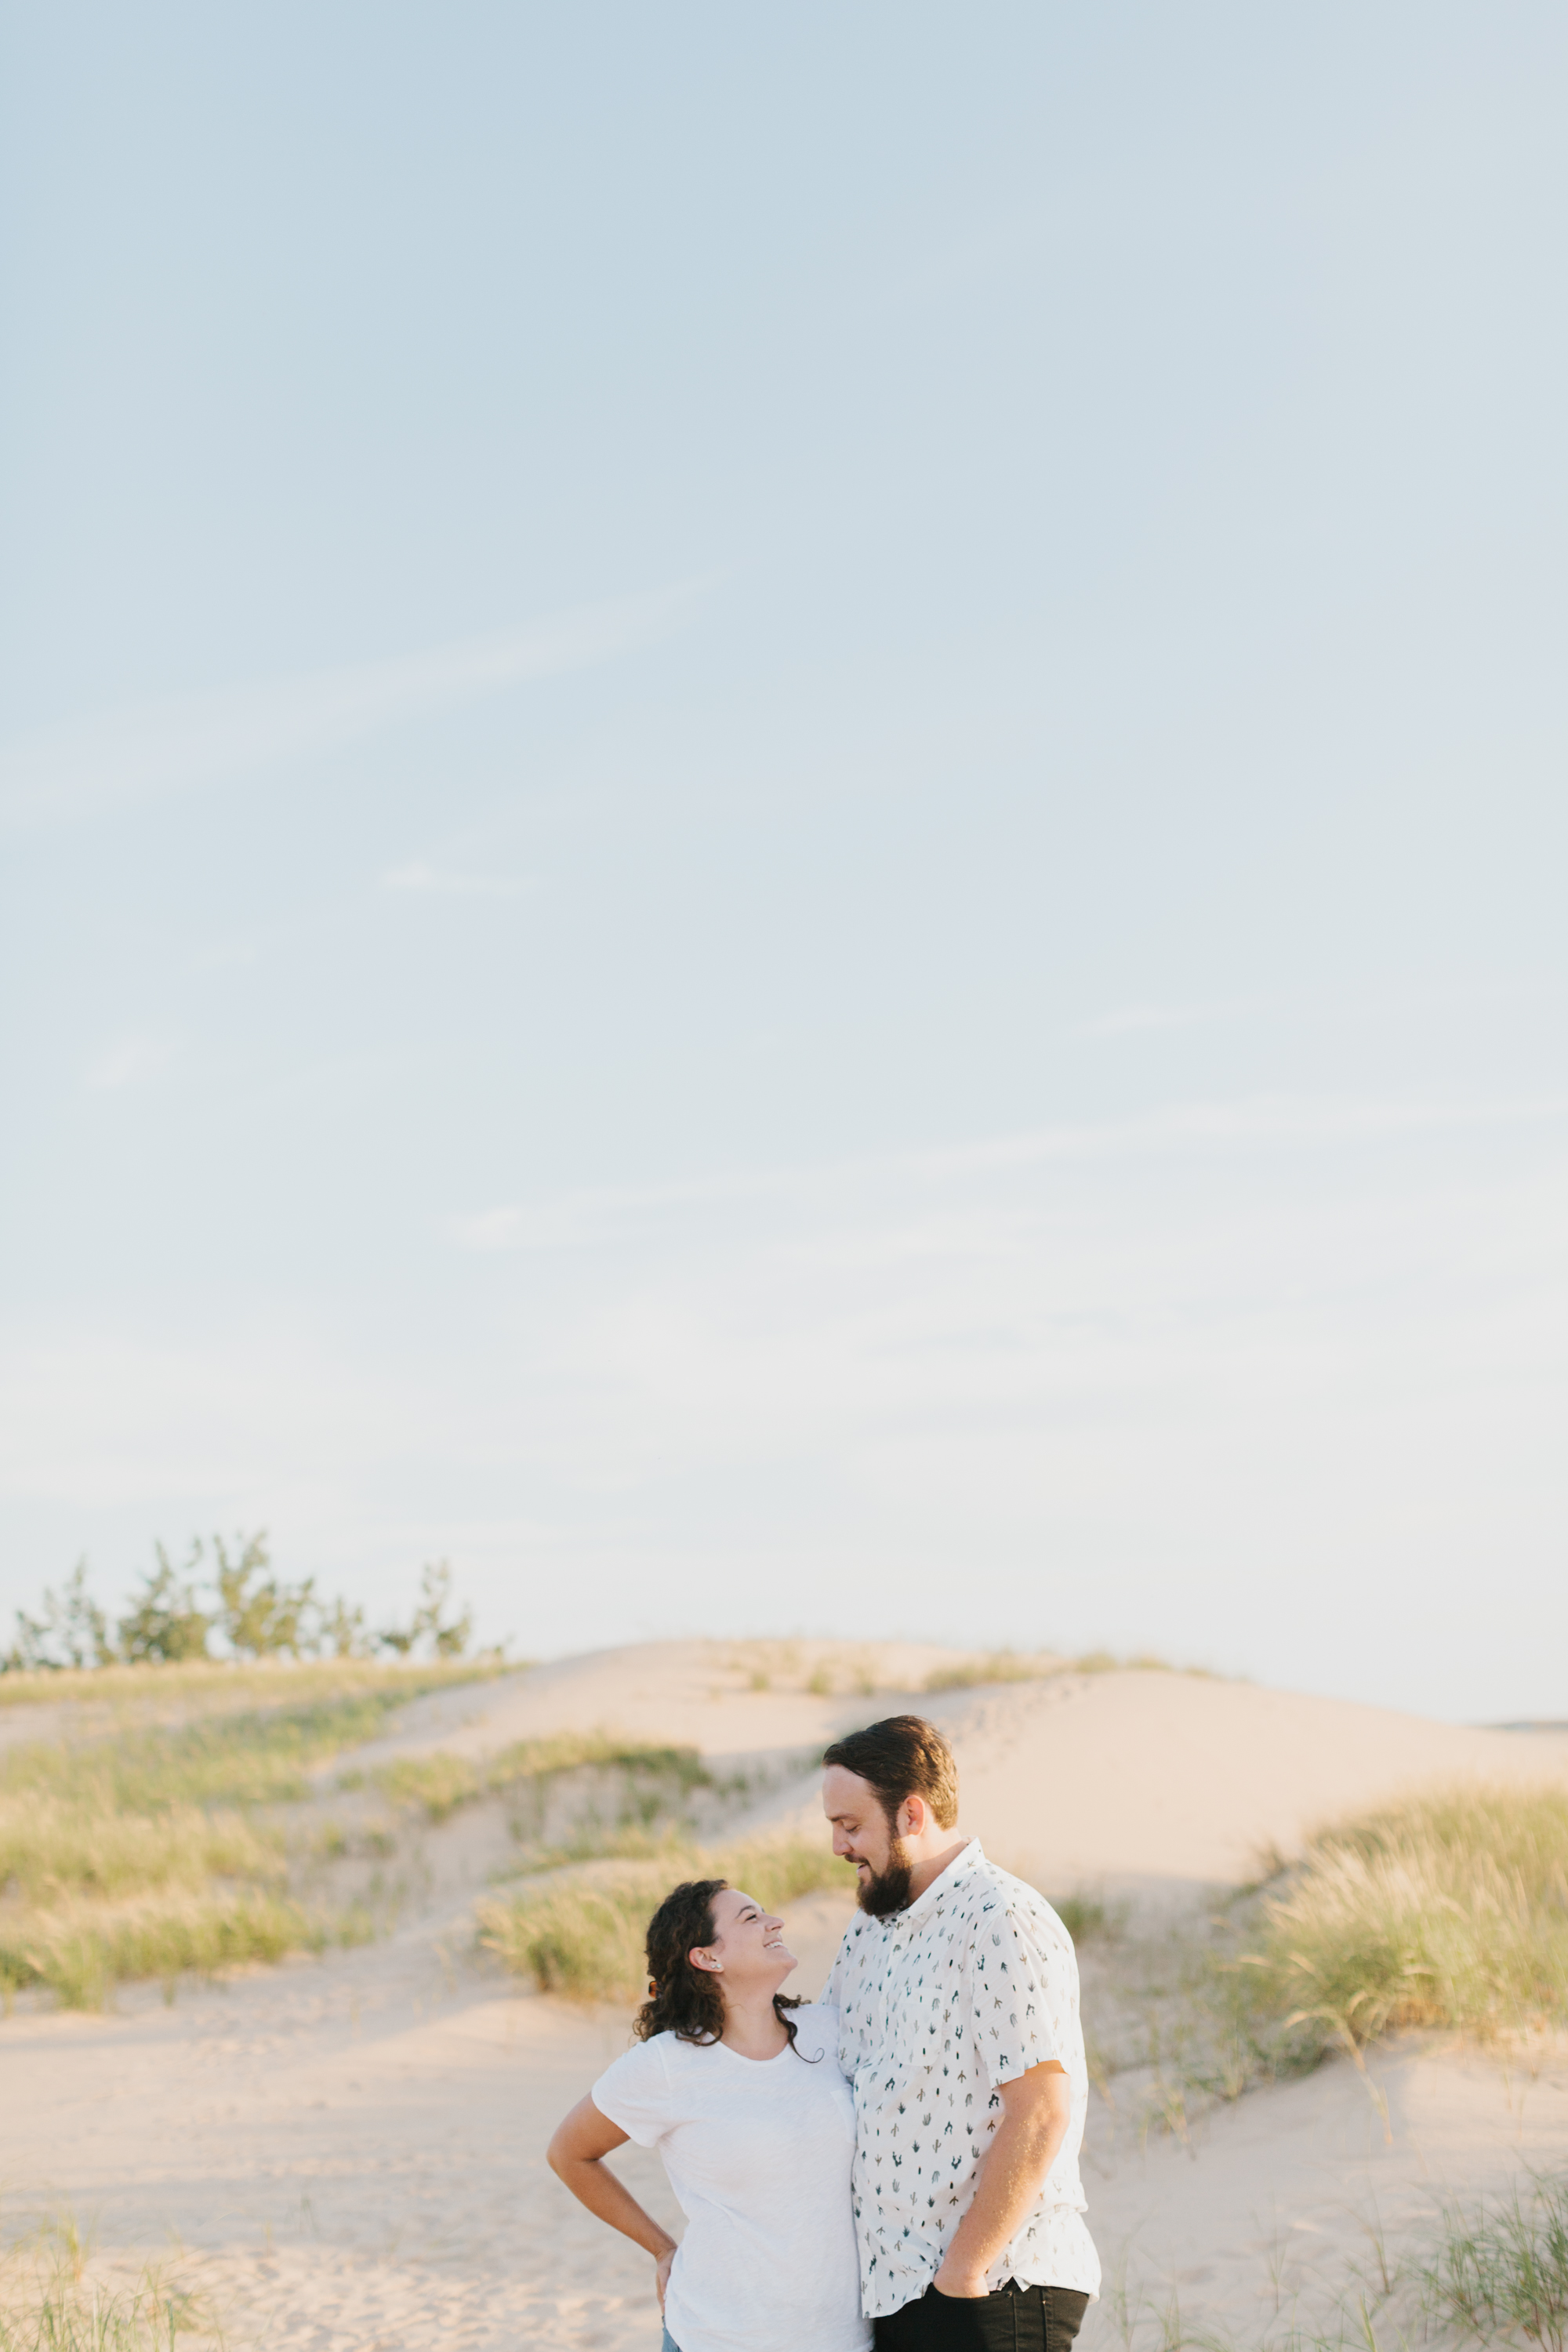 Northern Michigan Sleeping Bear Dunes Wedding Engagement Photographer Mae Stier-011.jpg